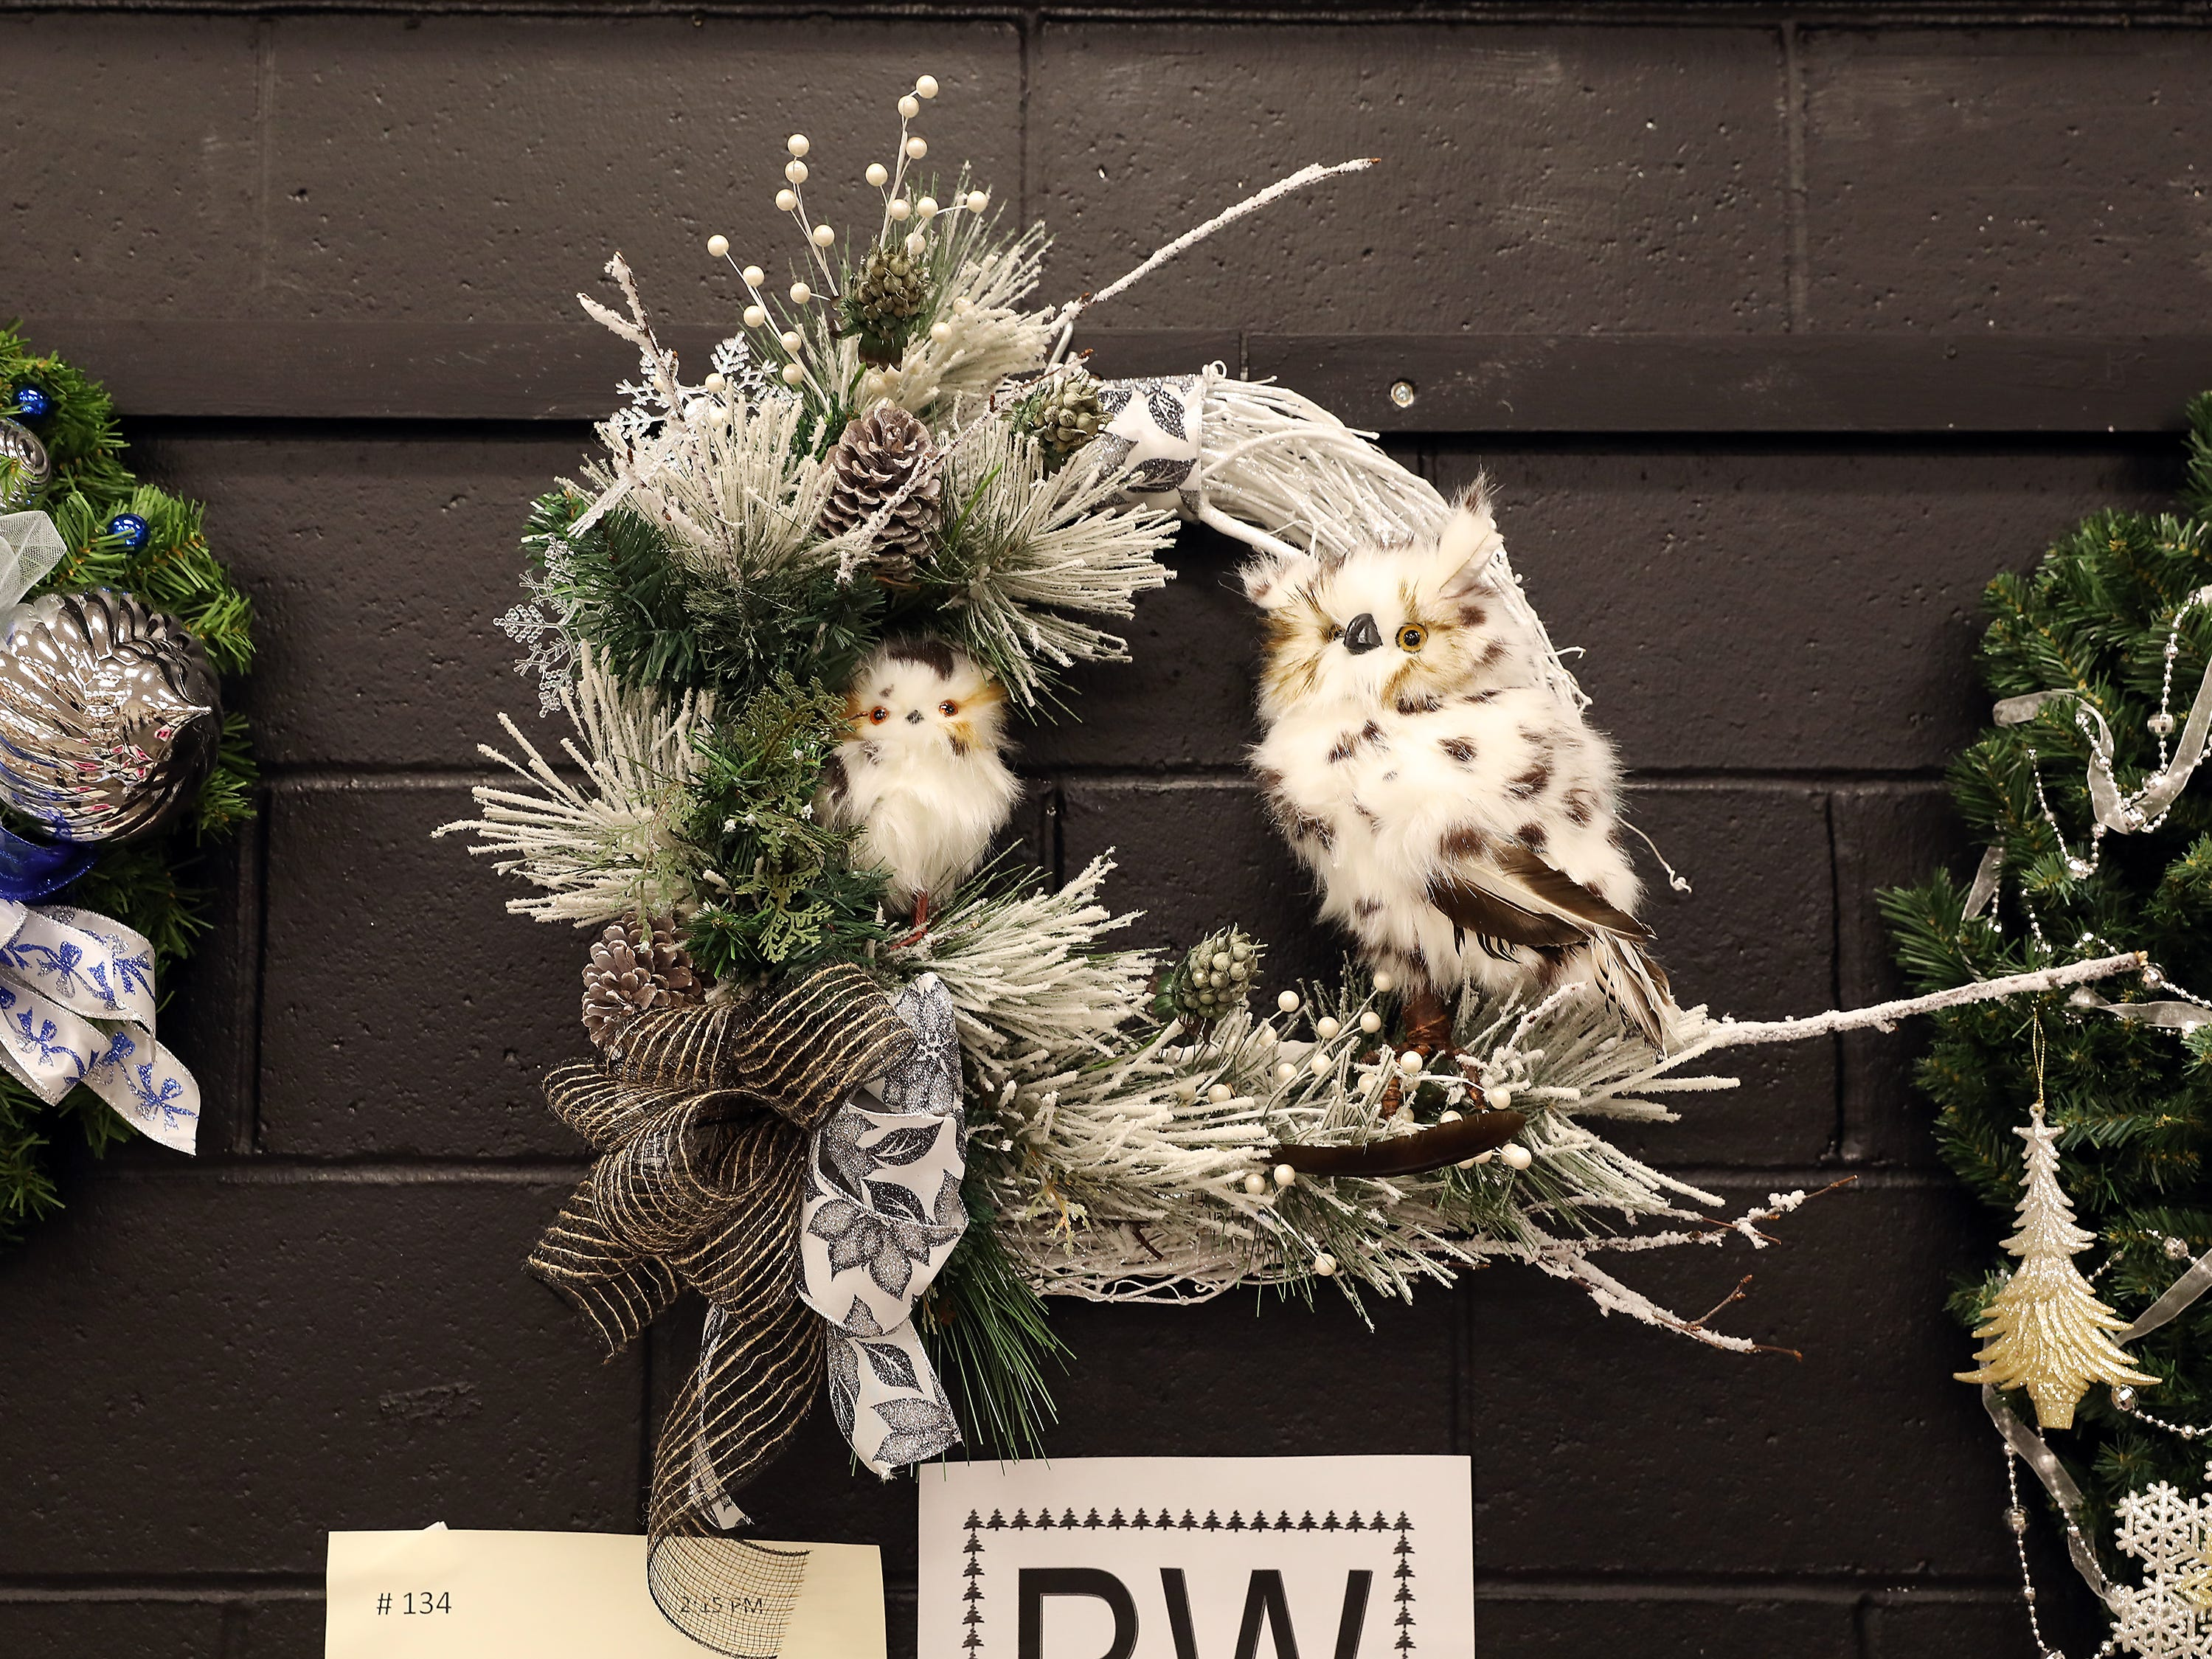 134	2:15 PM	McLain, Hill, Rugg and Assoc.	Wreath	The Wise Old Owl!	Christmas wreath		Gift cards, blanket, children's books and wood shelf.